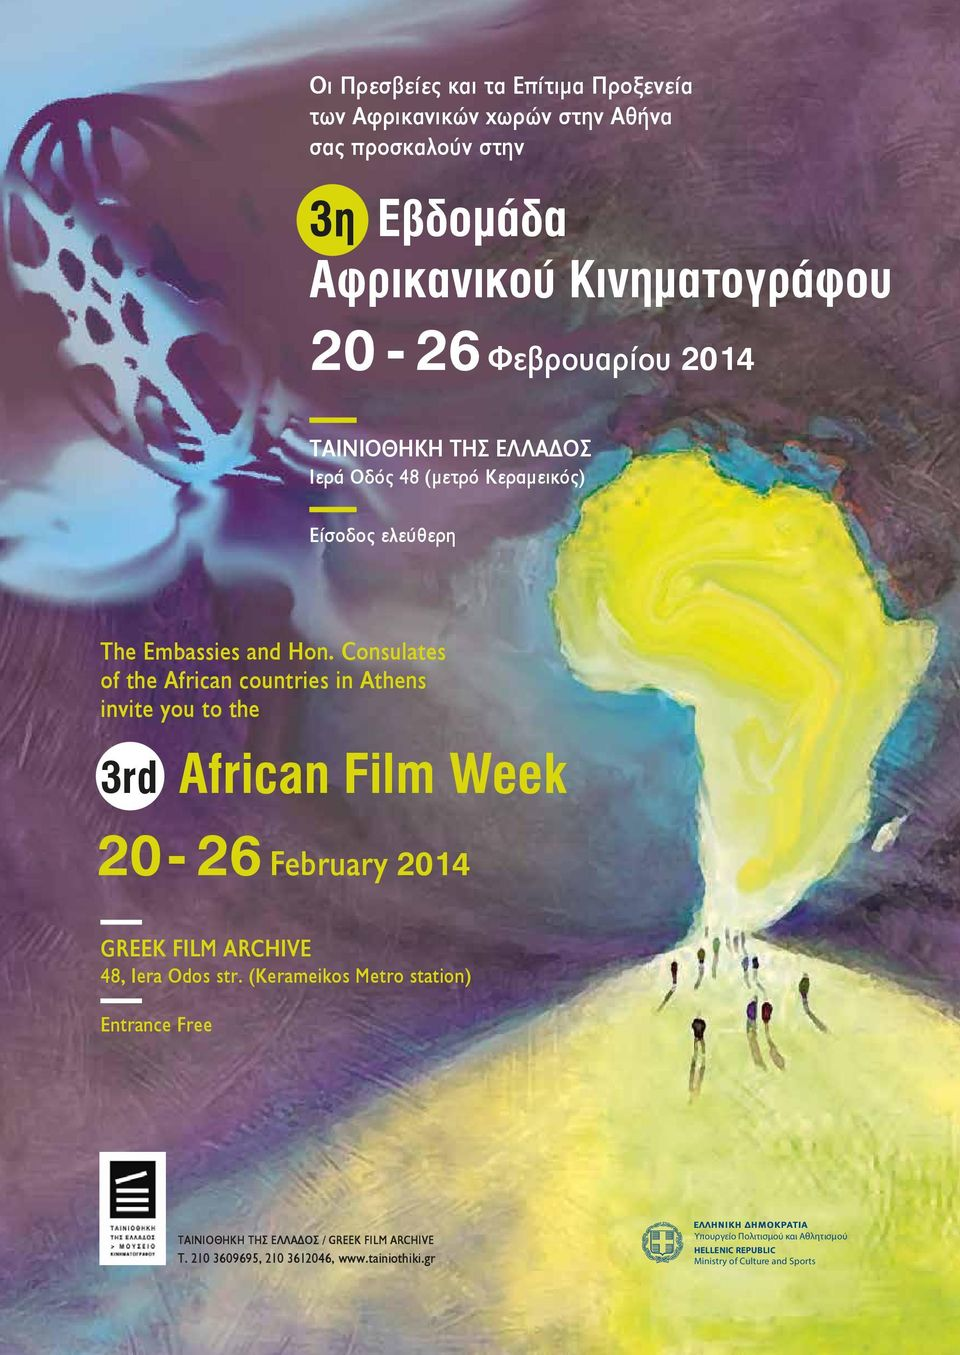 Consulates of the African countries in Athens invite you to the 3rd Αfrican Film Week 20-26 February 2014 GREEK FILM ARCHIVE 48, Iera Odos str.